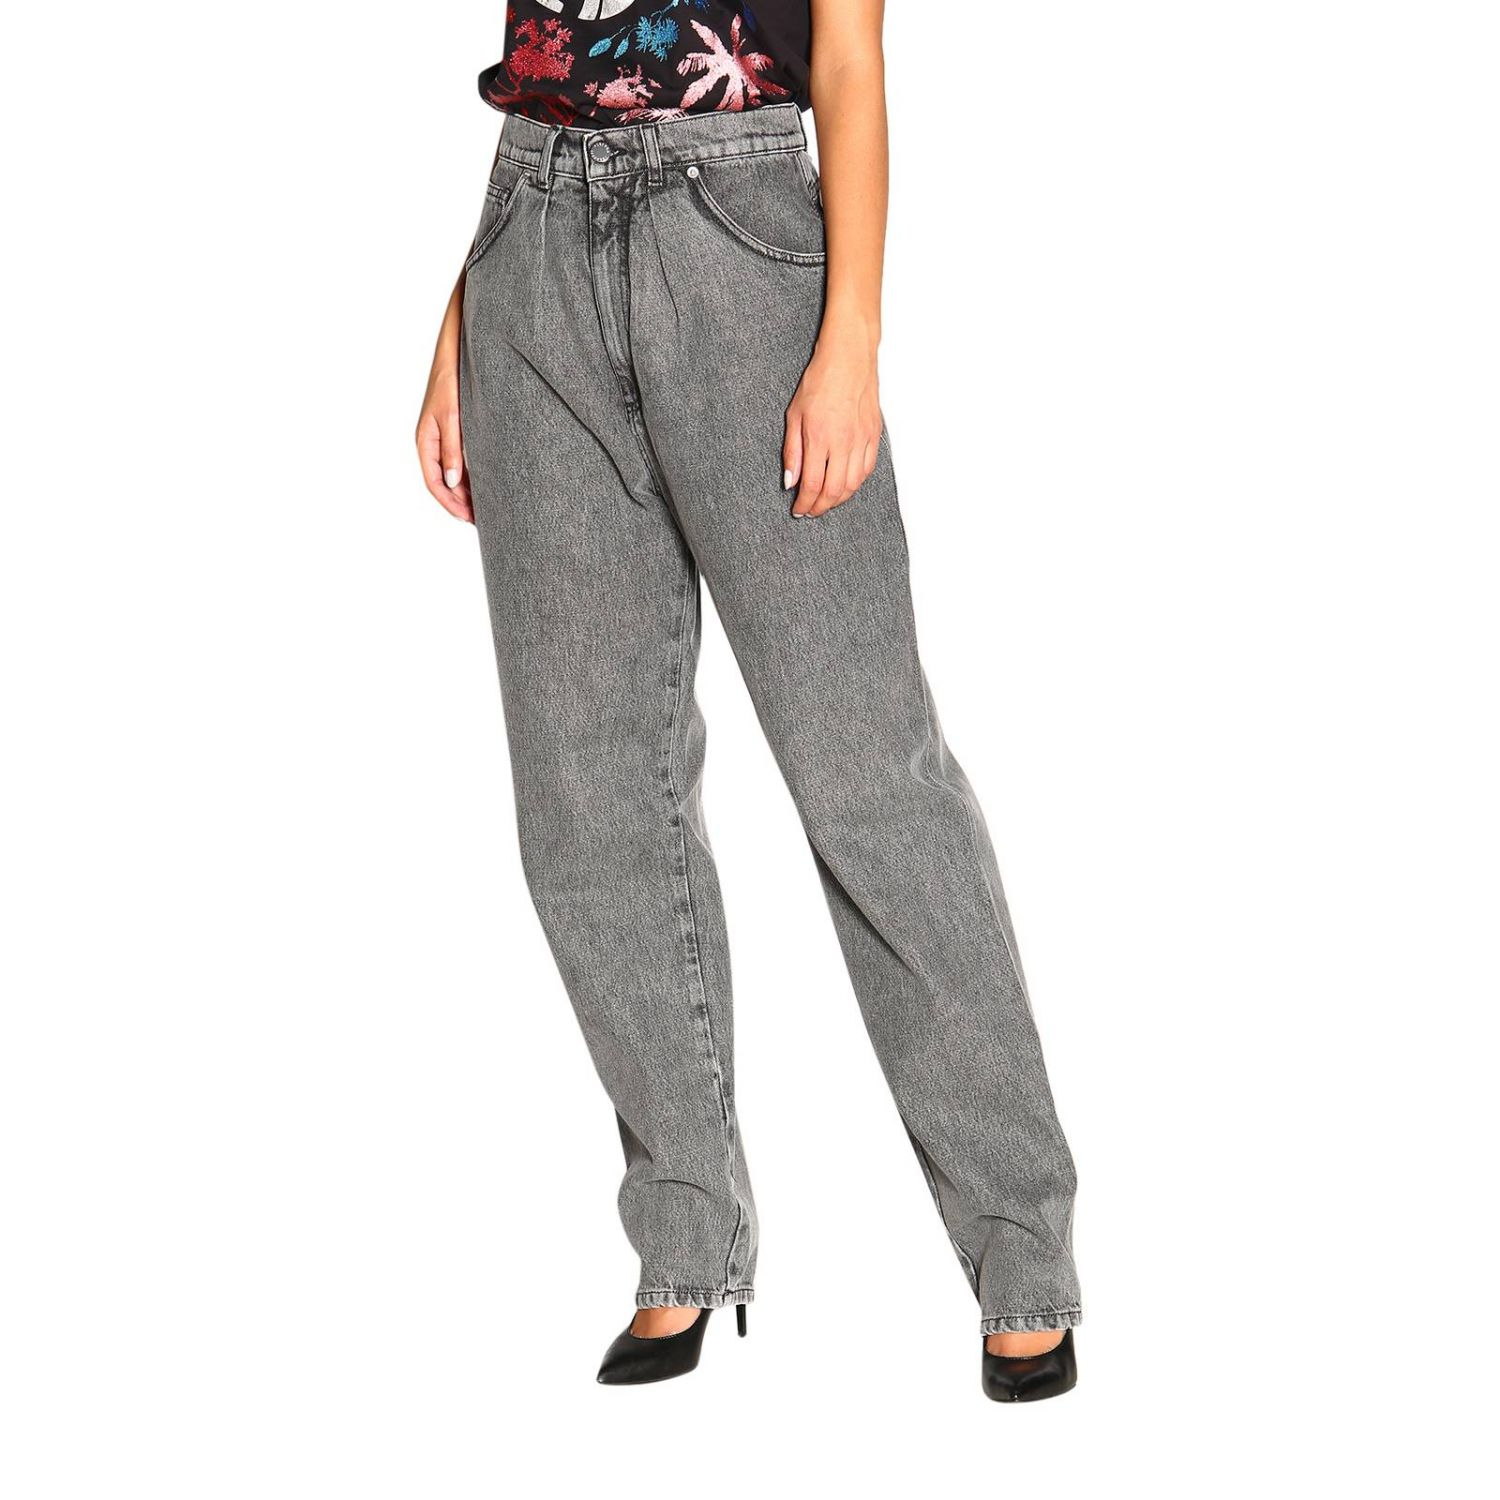 Jeans Alberta Ferretti: Alberta Ferretti high waisted jeans in used effect denim grey 4